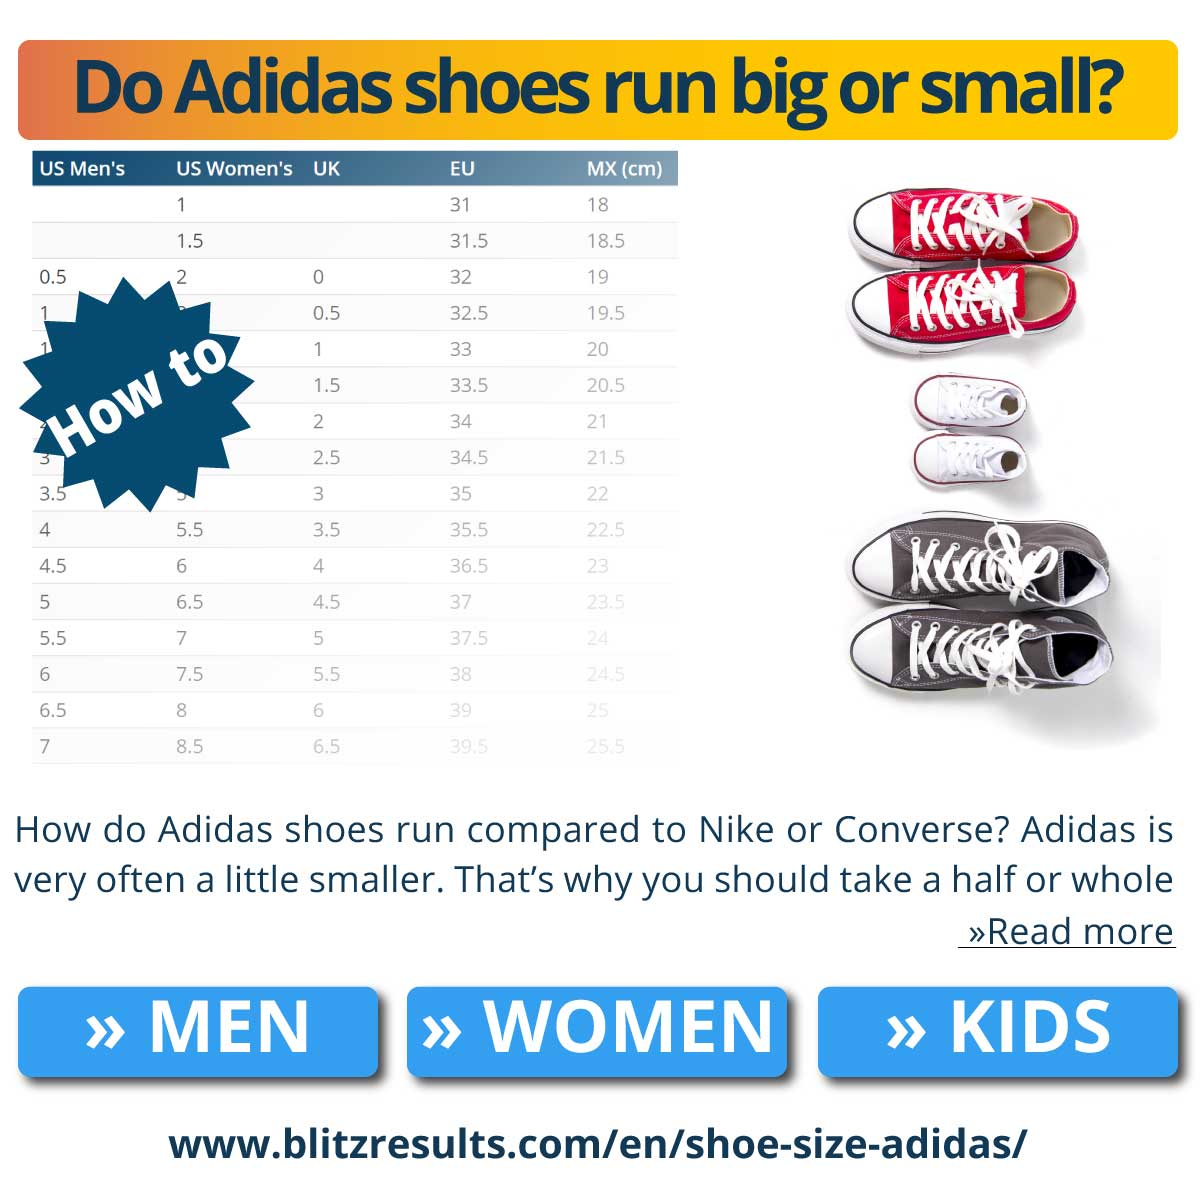 Do Adidas shoes run big or small?